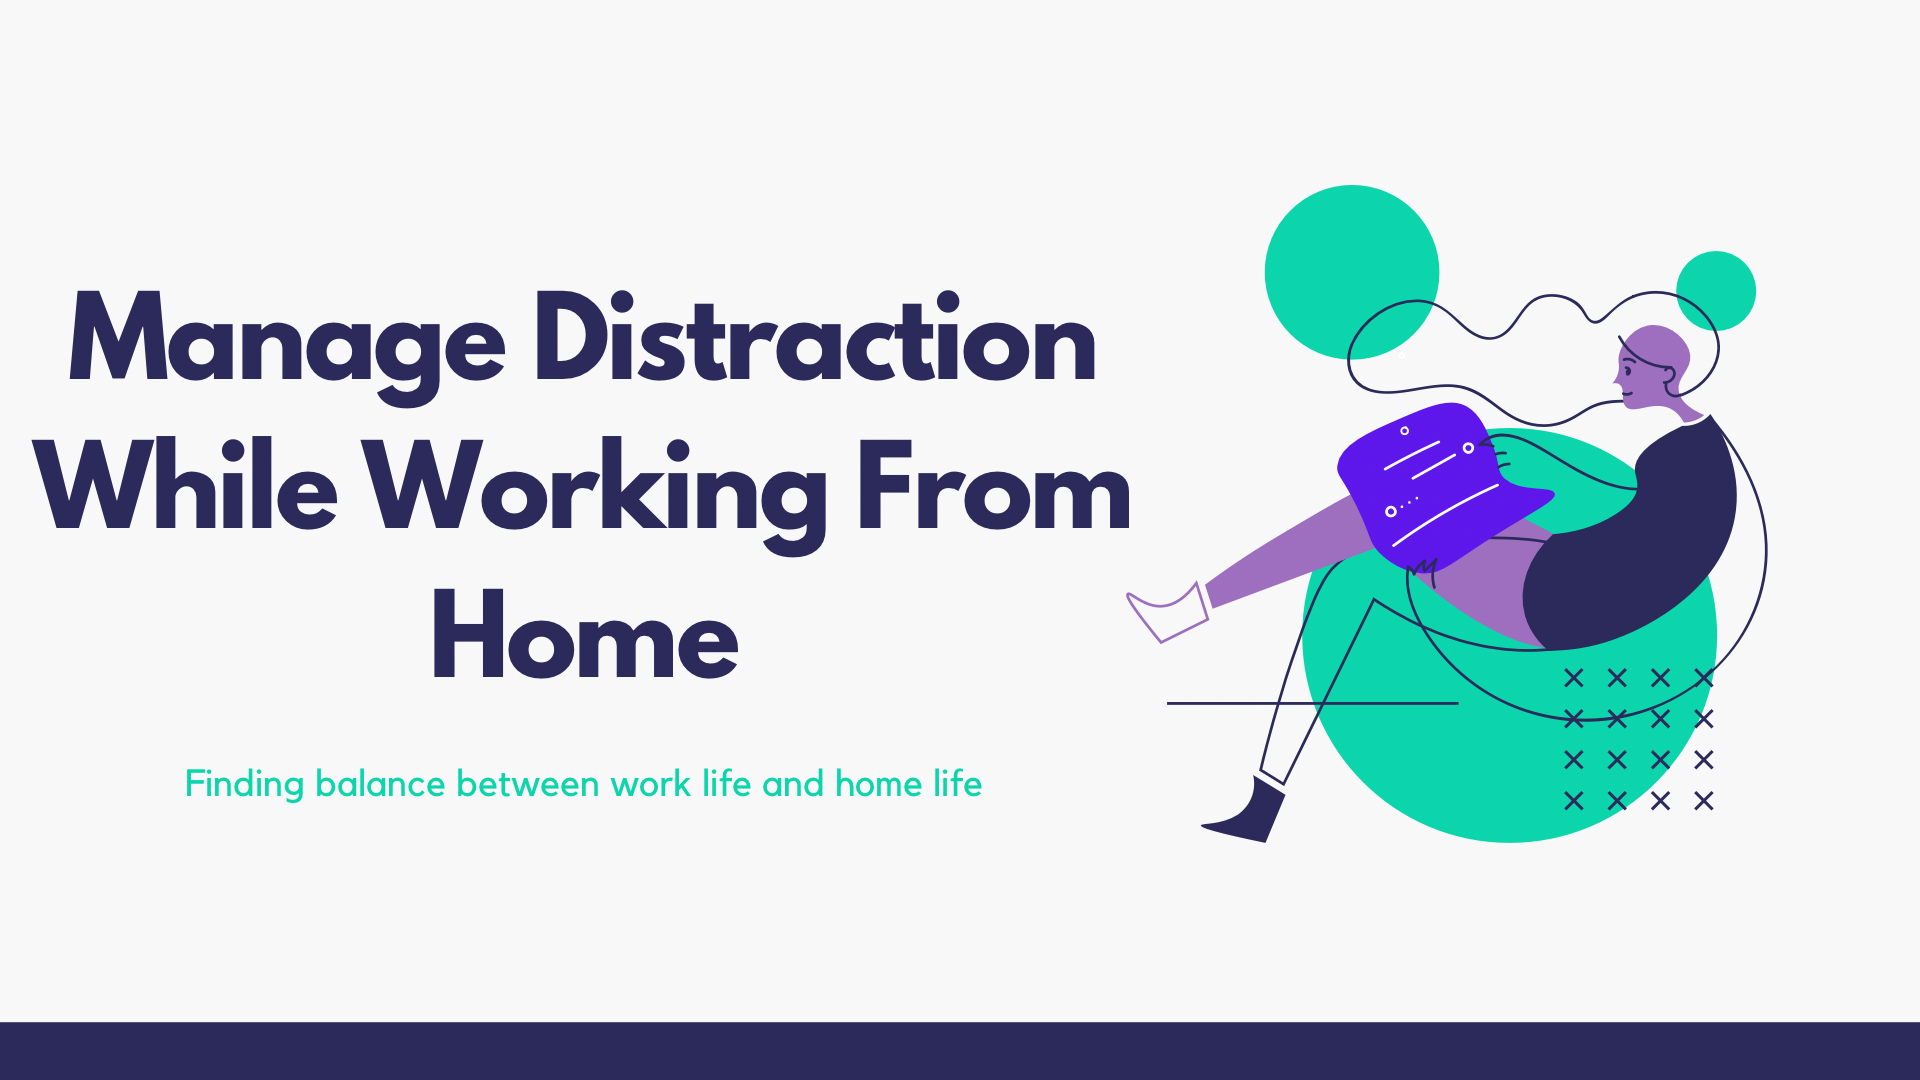 How To Manage Distraction While Working From Home